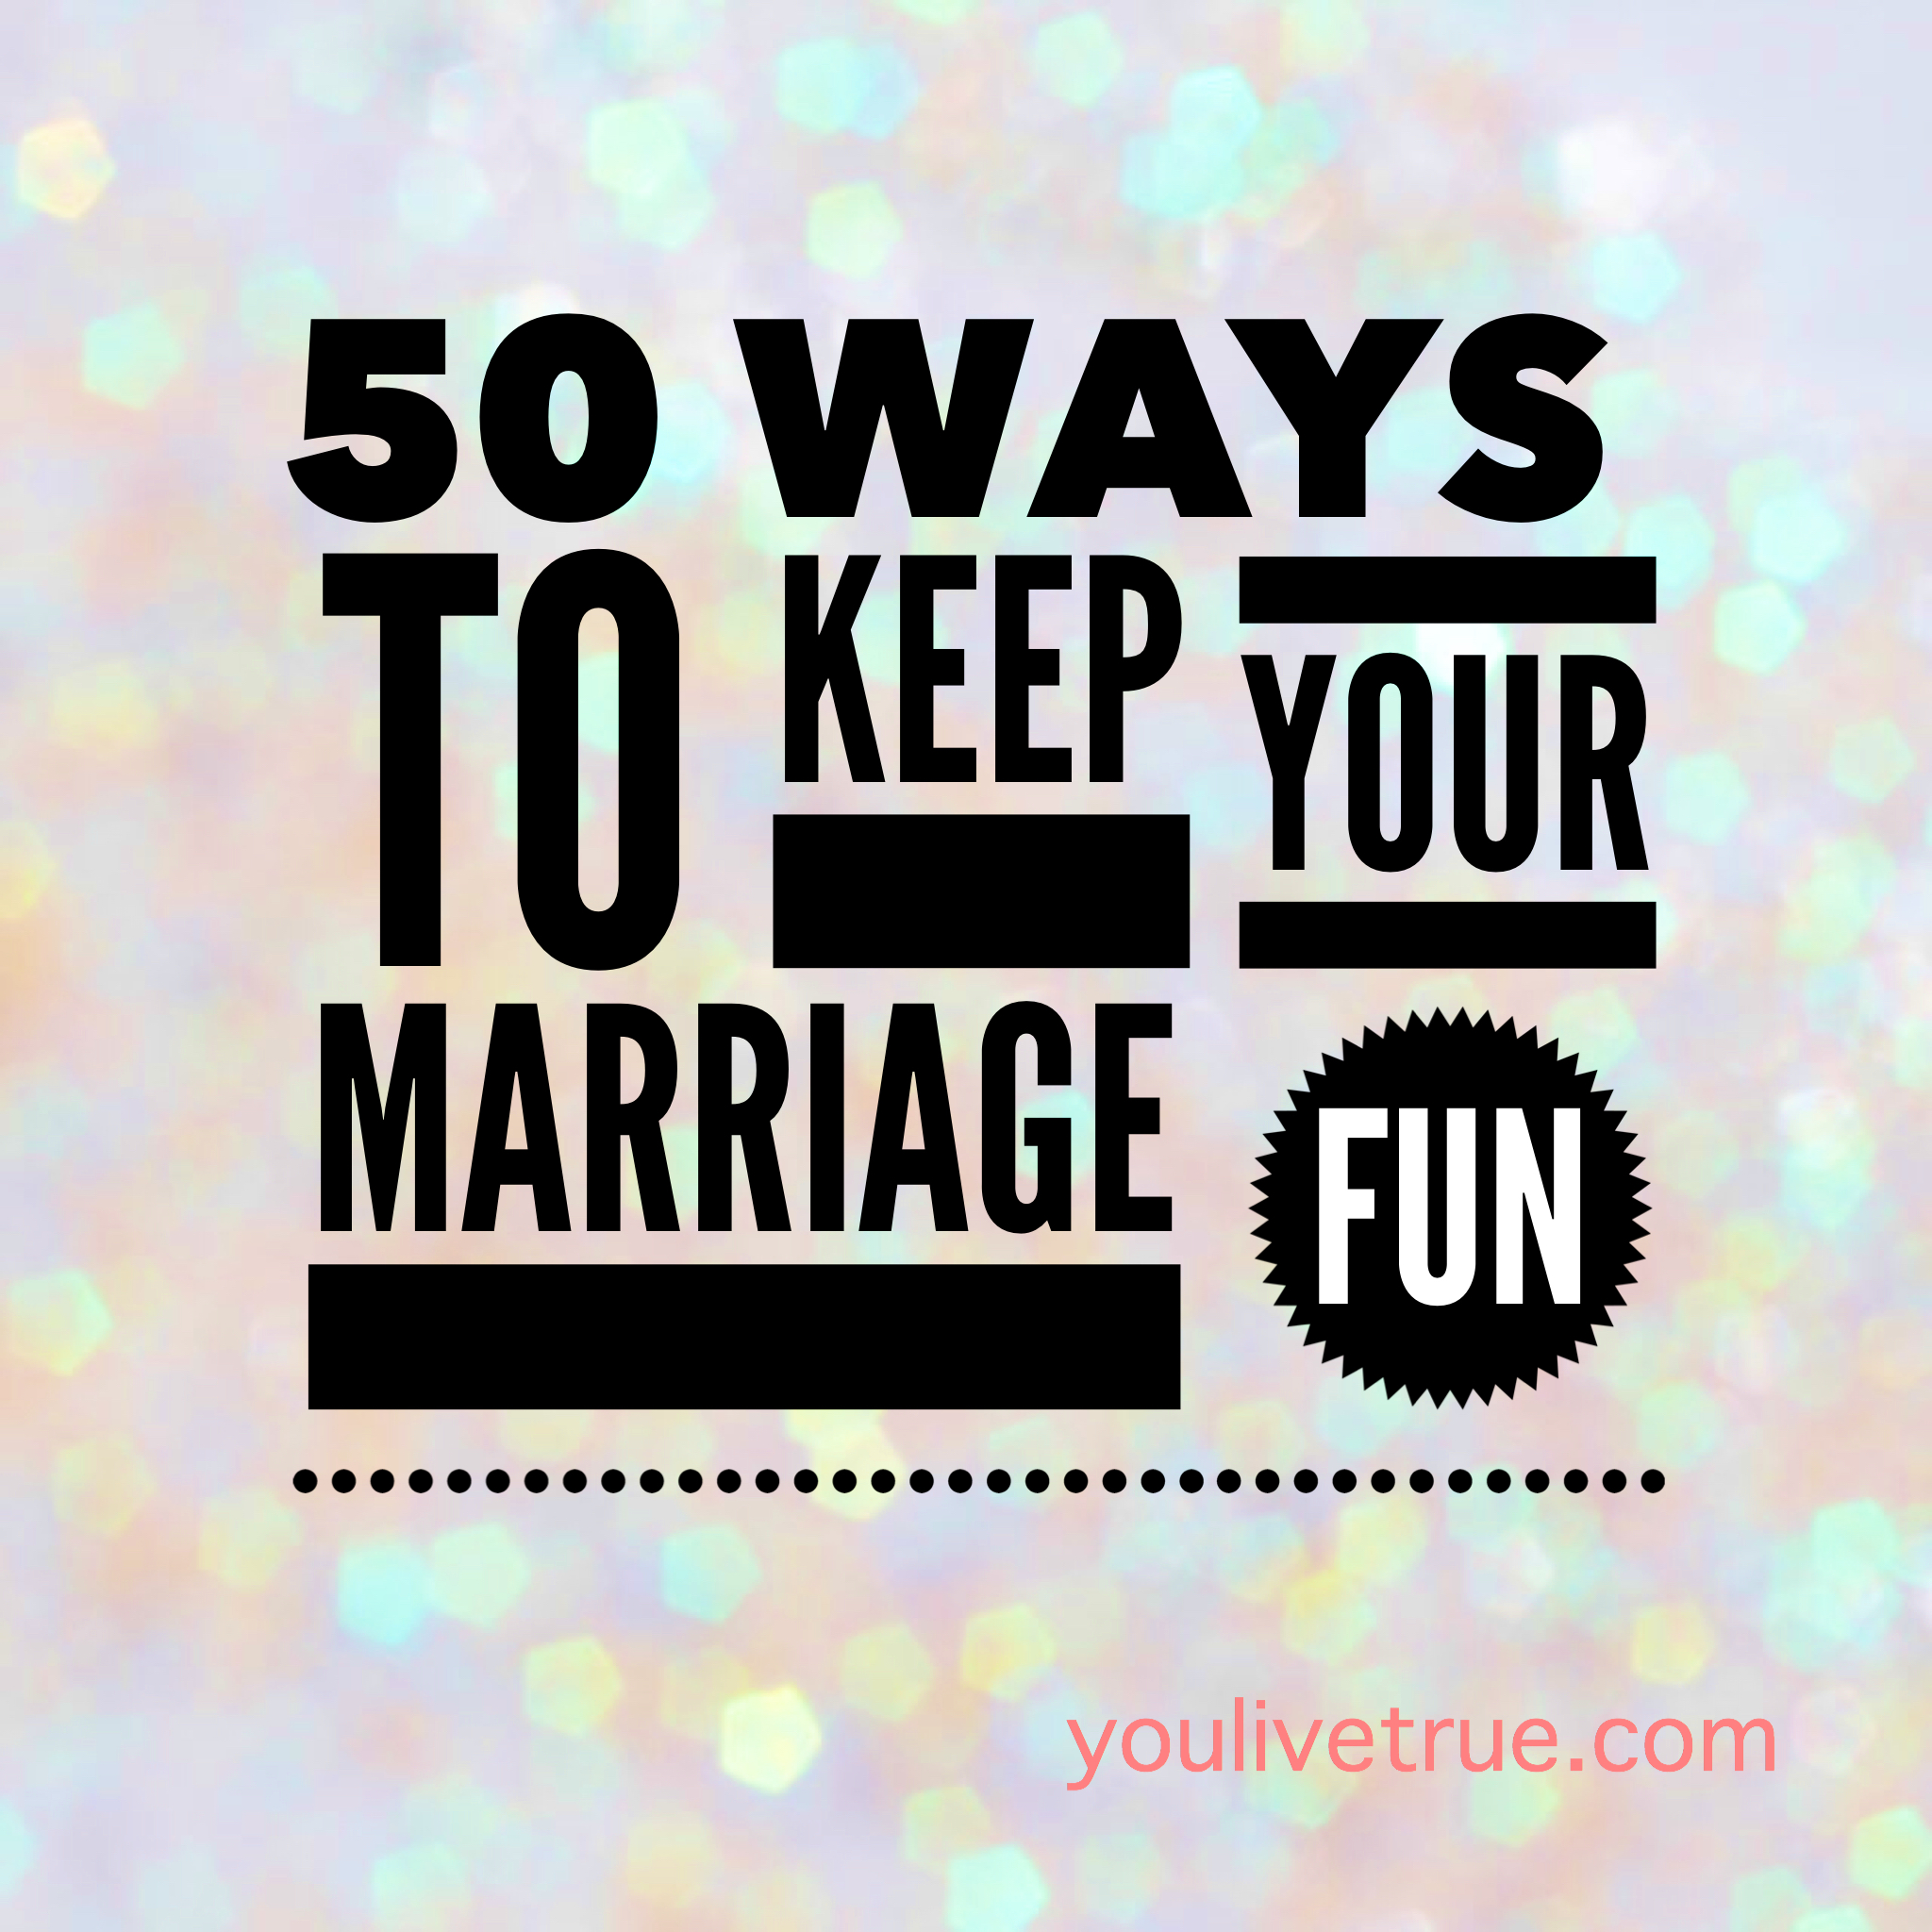 How to keep your relationship fun and exciting